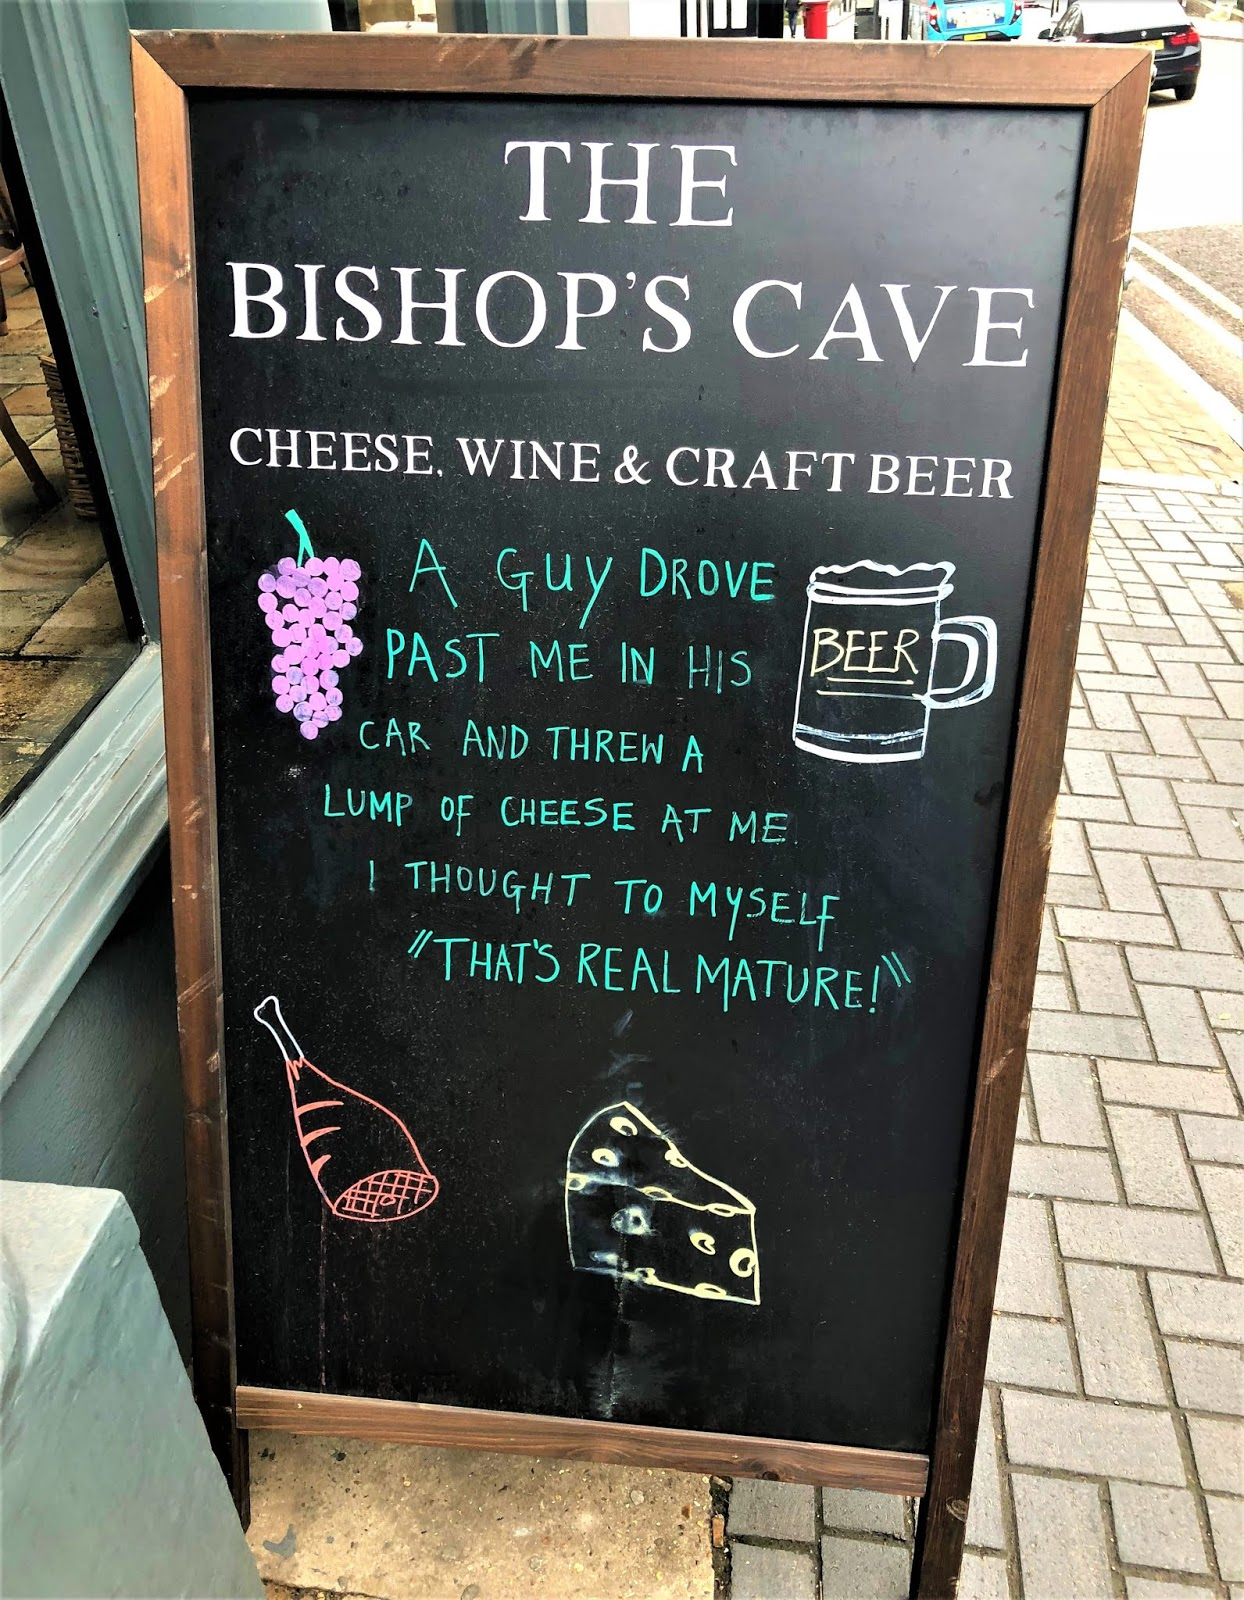 Cheese and wine at The Bishop's Cave, St Albans